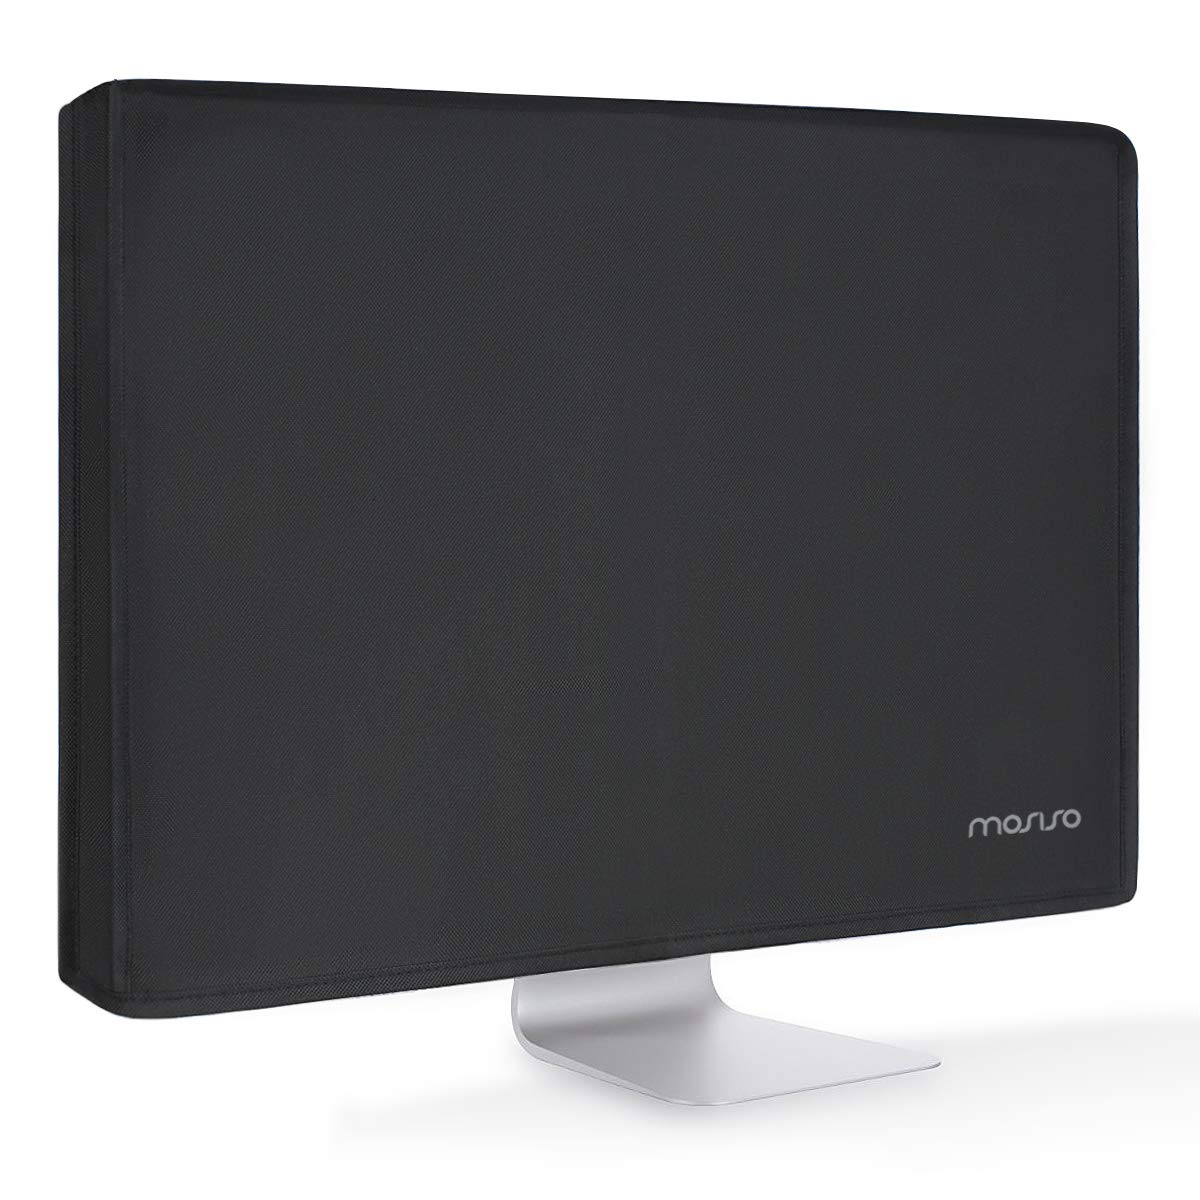 MOSISO Monitor Dust Cover 26, 27, 28, 29 Inch Anti-Static Polyester LCD/LED/HD Panel Case Screen Display Protective Sleeve Compatible with 26-29 Inch iMac, PC, Desktop Computer and TV, Black